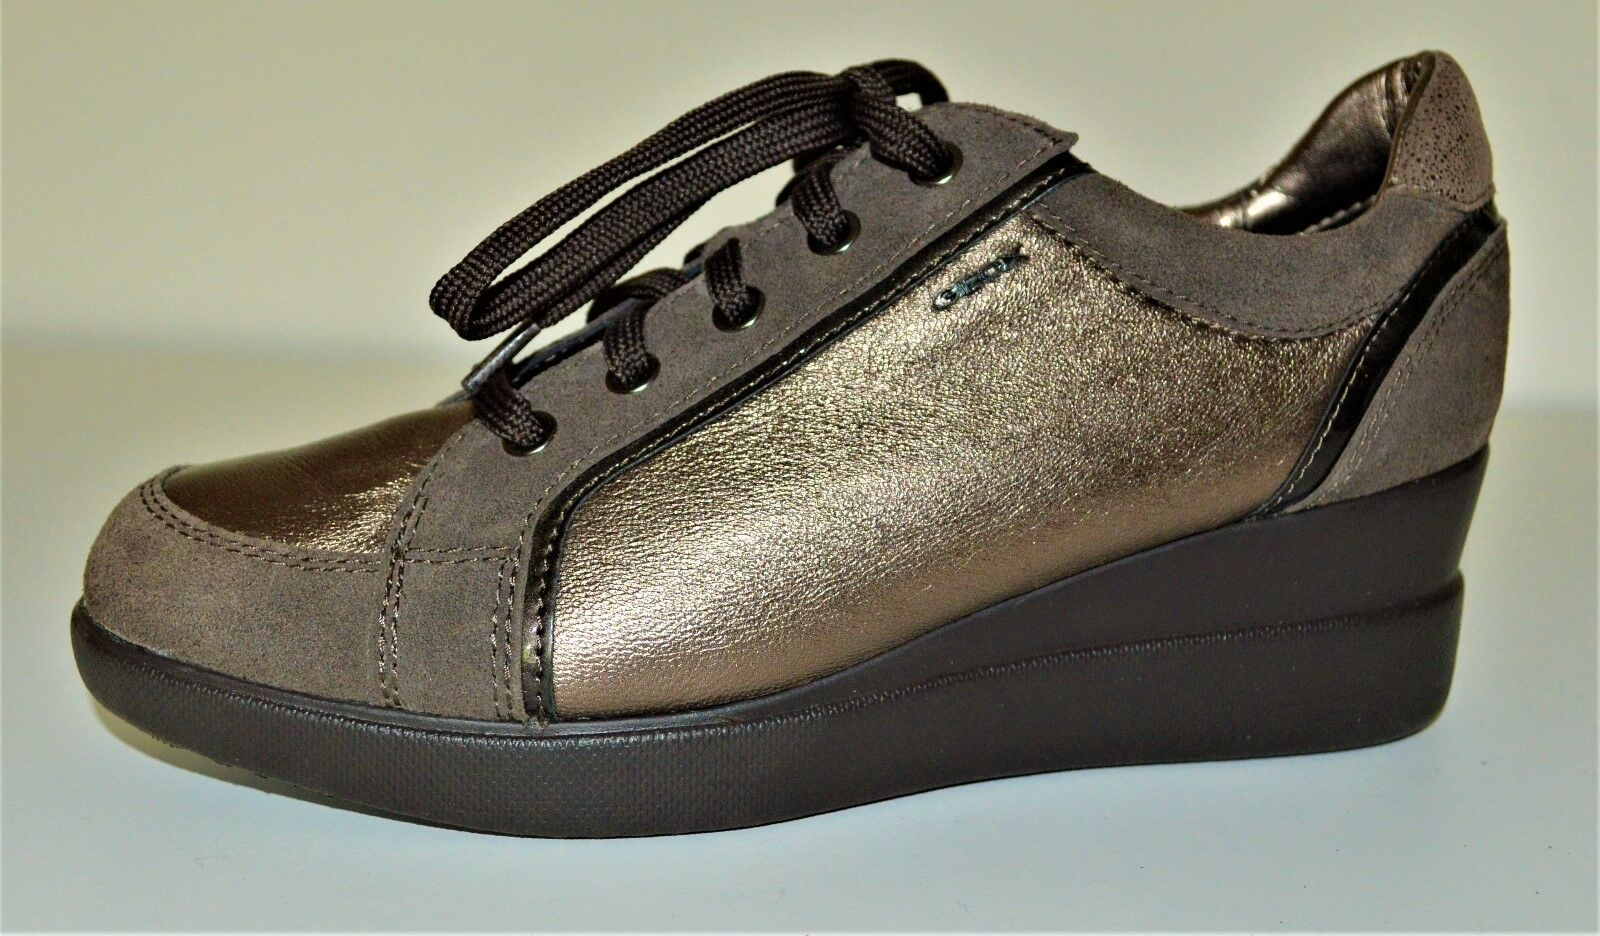 GEOX Stardust Donna's Casual Metallic Wedge Shoes –Size 8/39